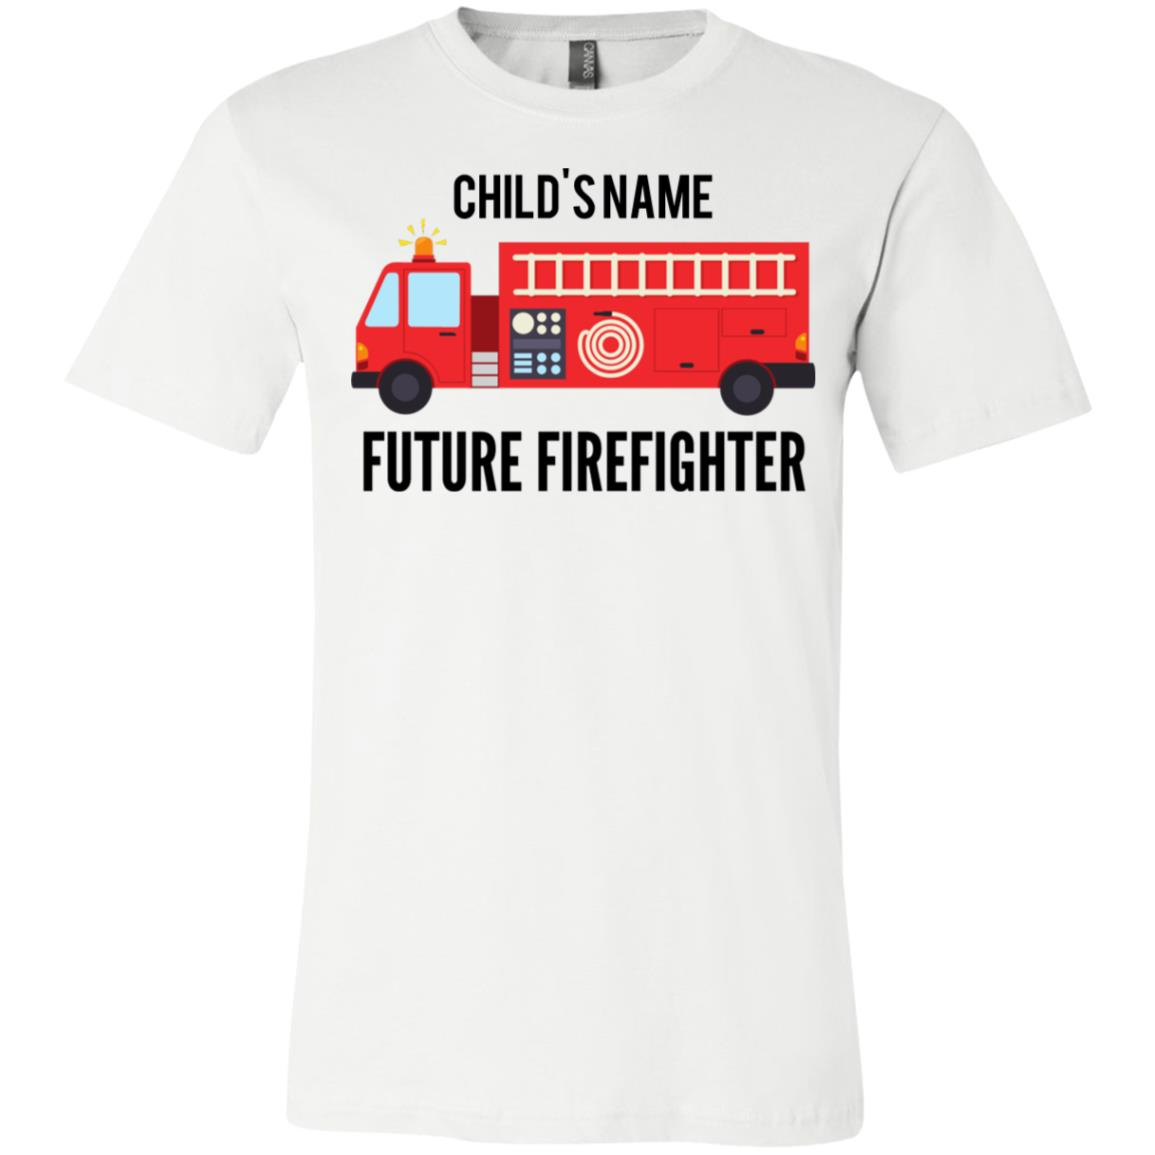 Personalized Future Firefighter Youth Jersey Short Sleeve T-Shirt by Bella + Canvas